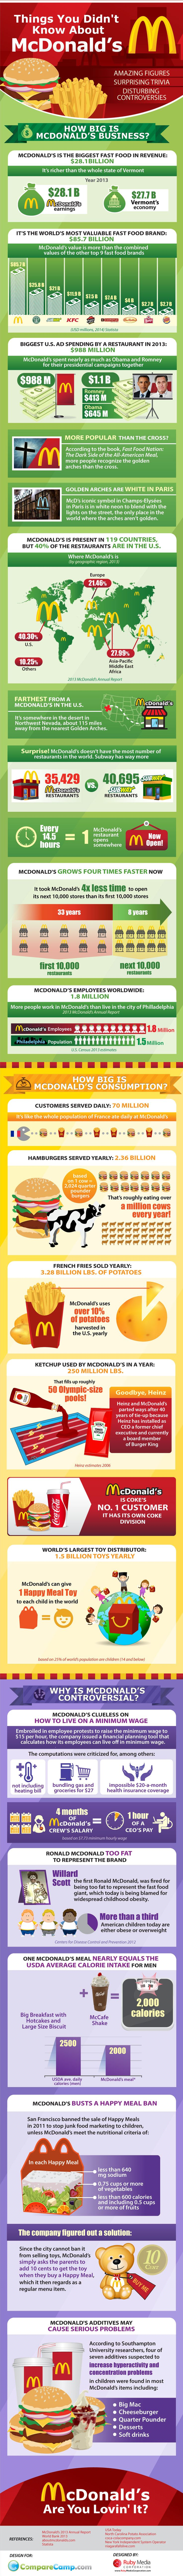 Things You Didnt Know About McDonald's